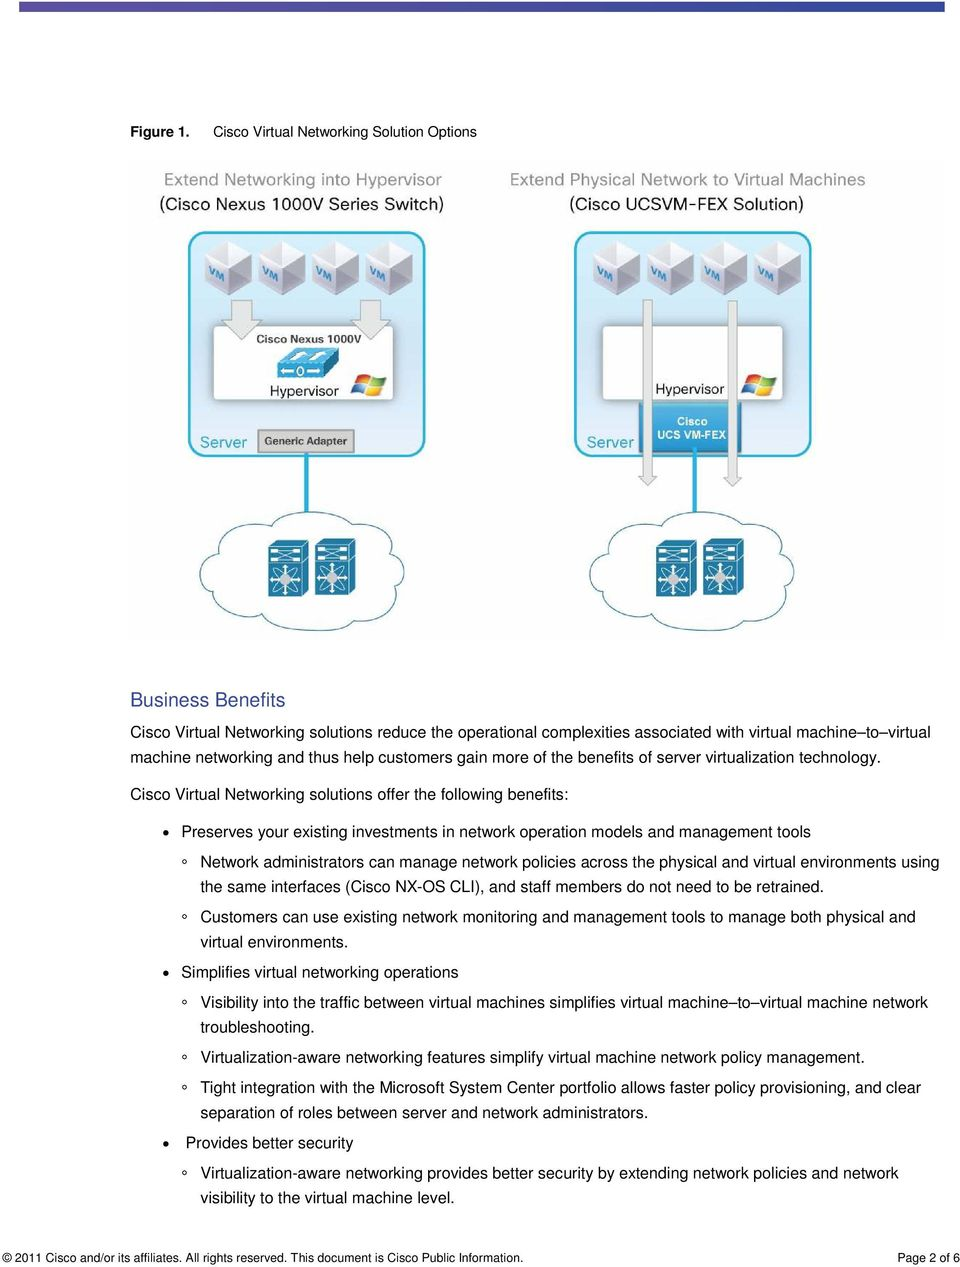 Business Benefits  Cisco Virtual Networking solutions offer